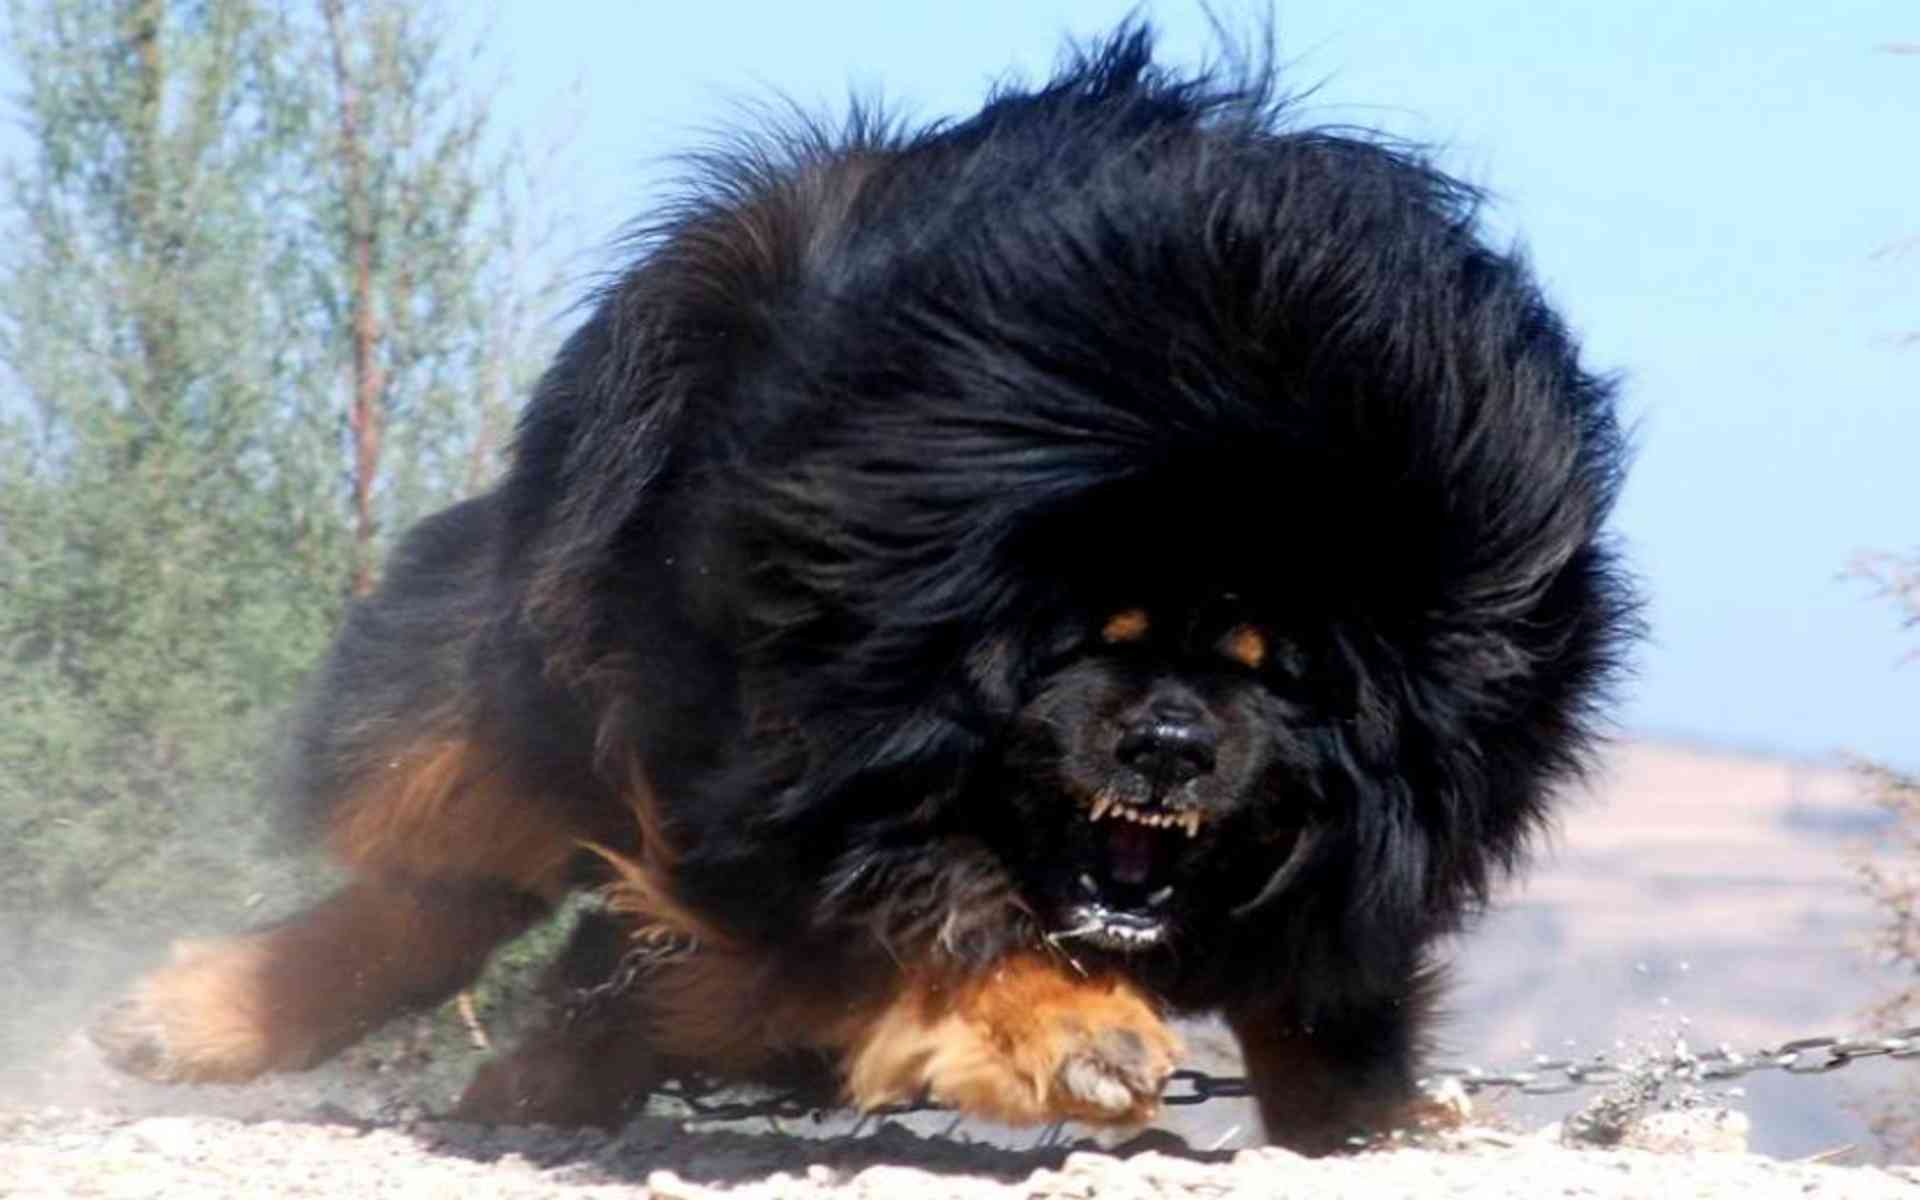 DOWNLOAD: Tibetan Mastiff angry free picture 2560 x 1600